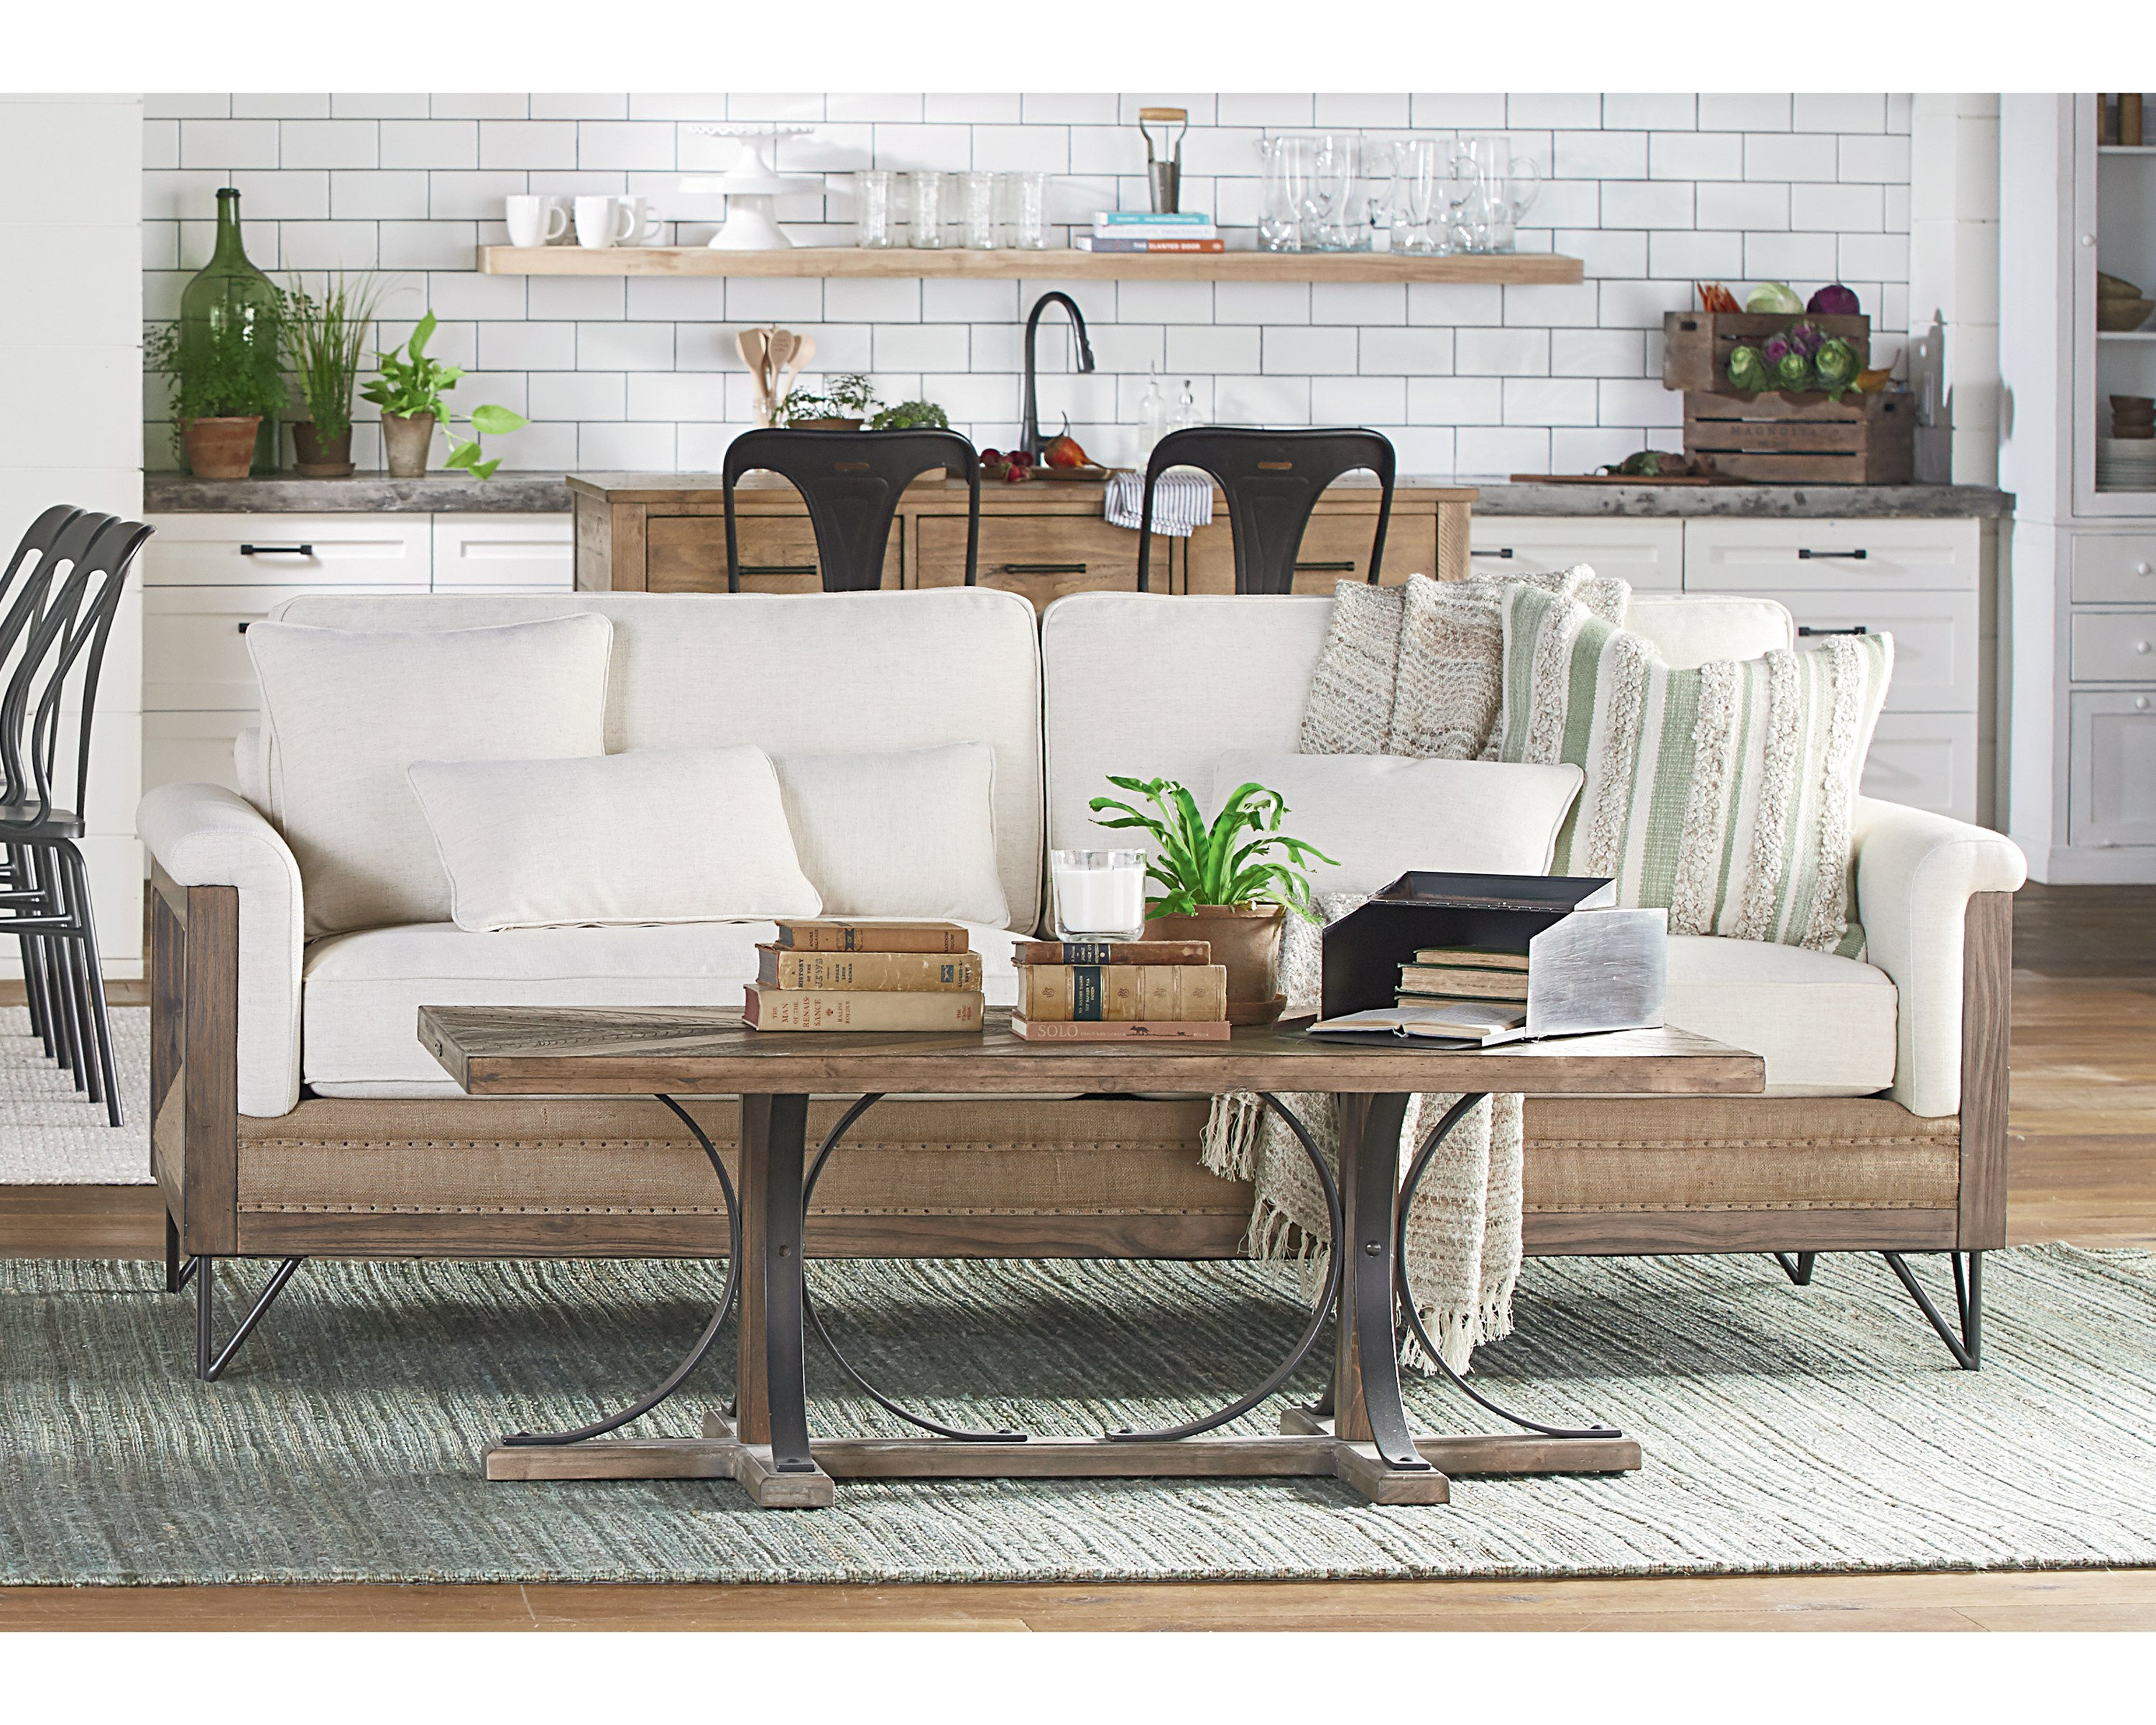 Paradigm Sofa - Magnolia Home pertaining to Magnolia Home Paradigm Sofa Chairs By Joanna Gaines